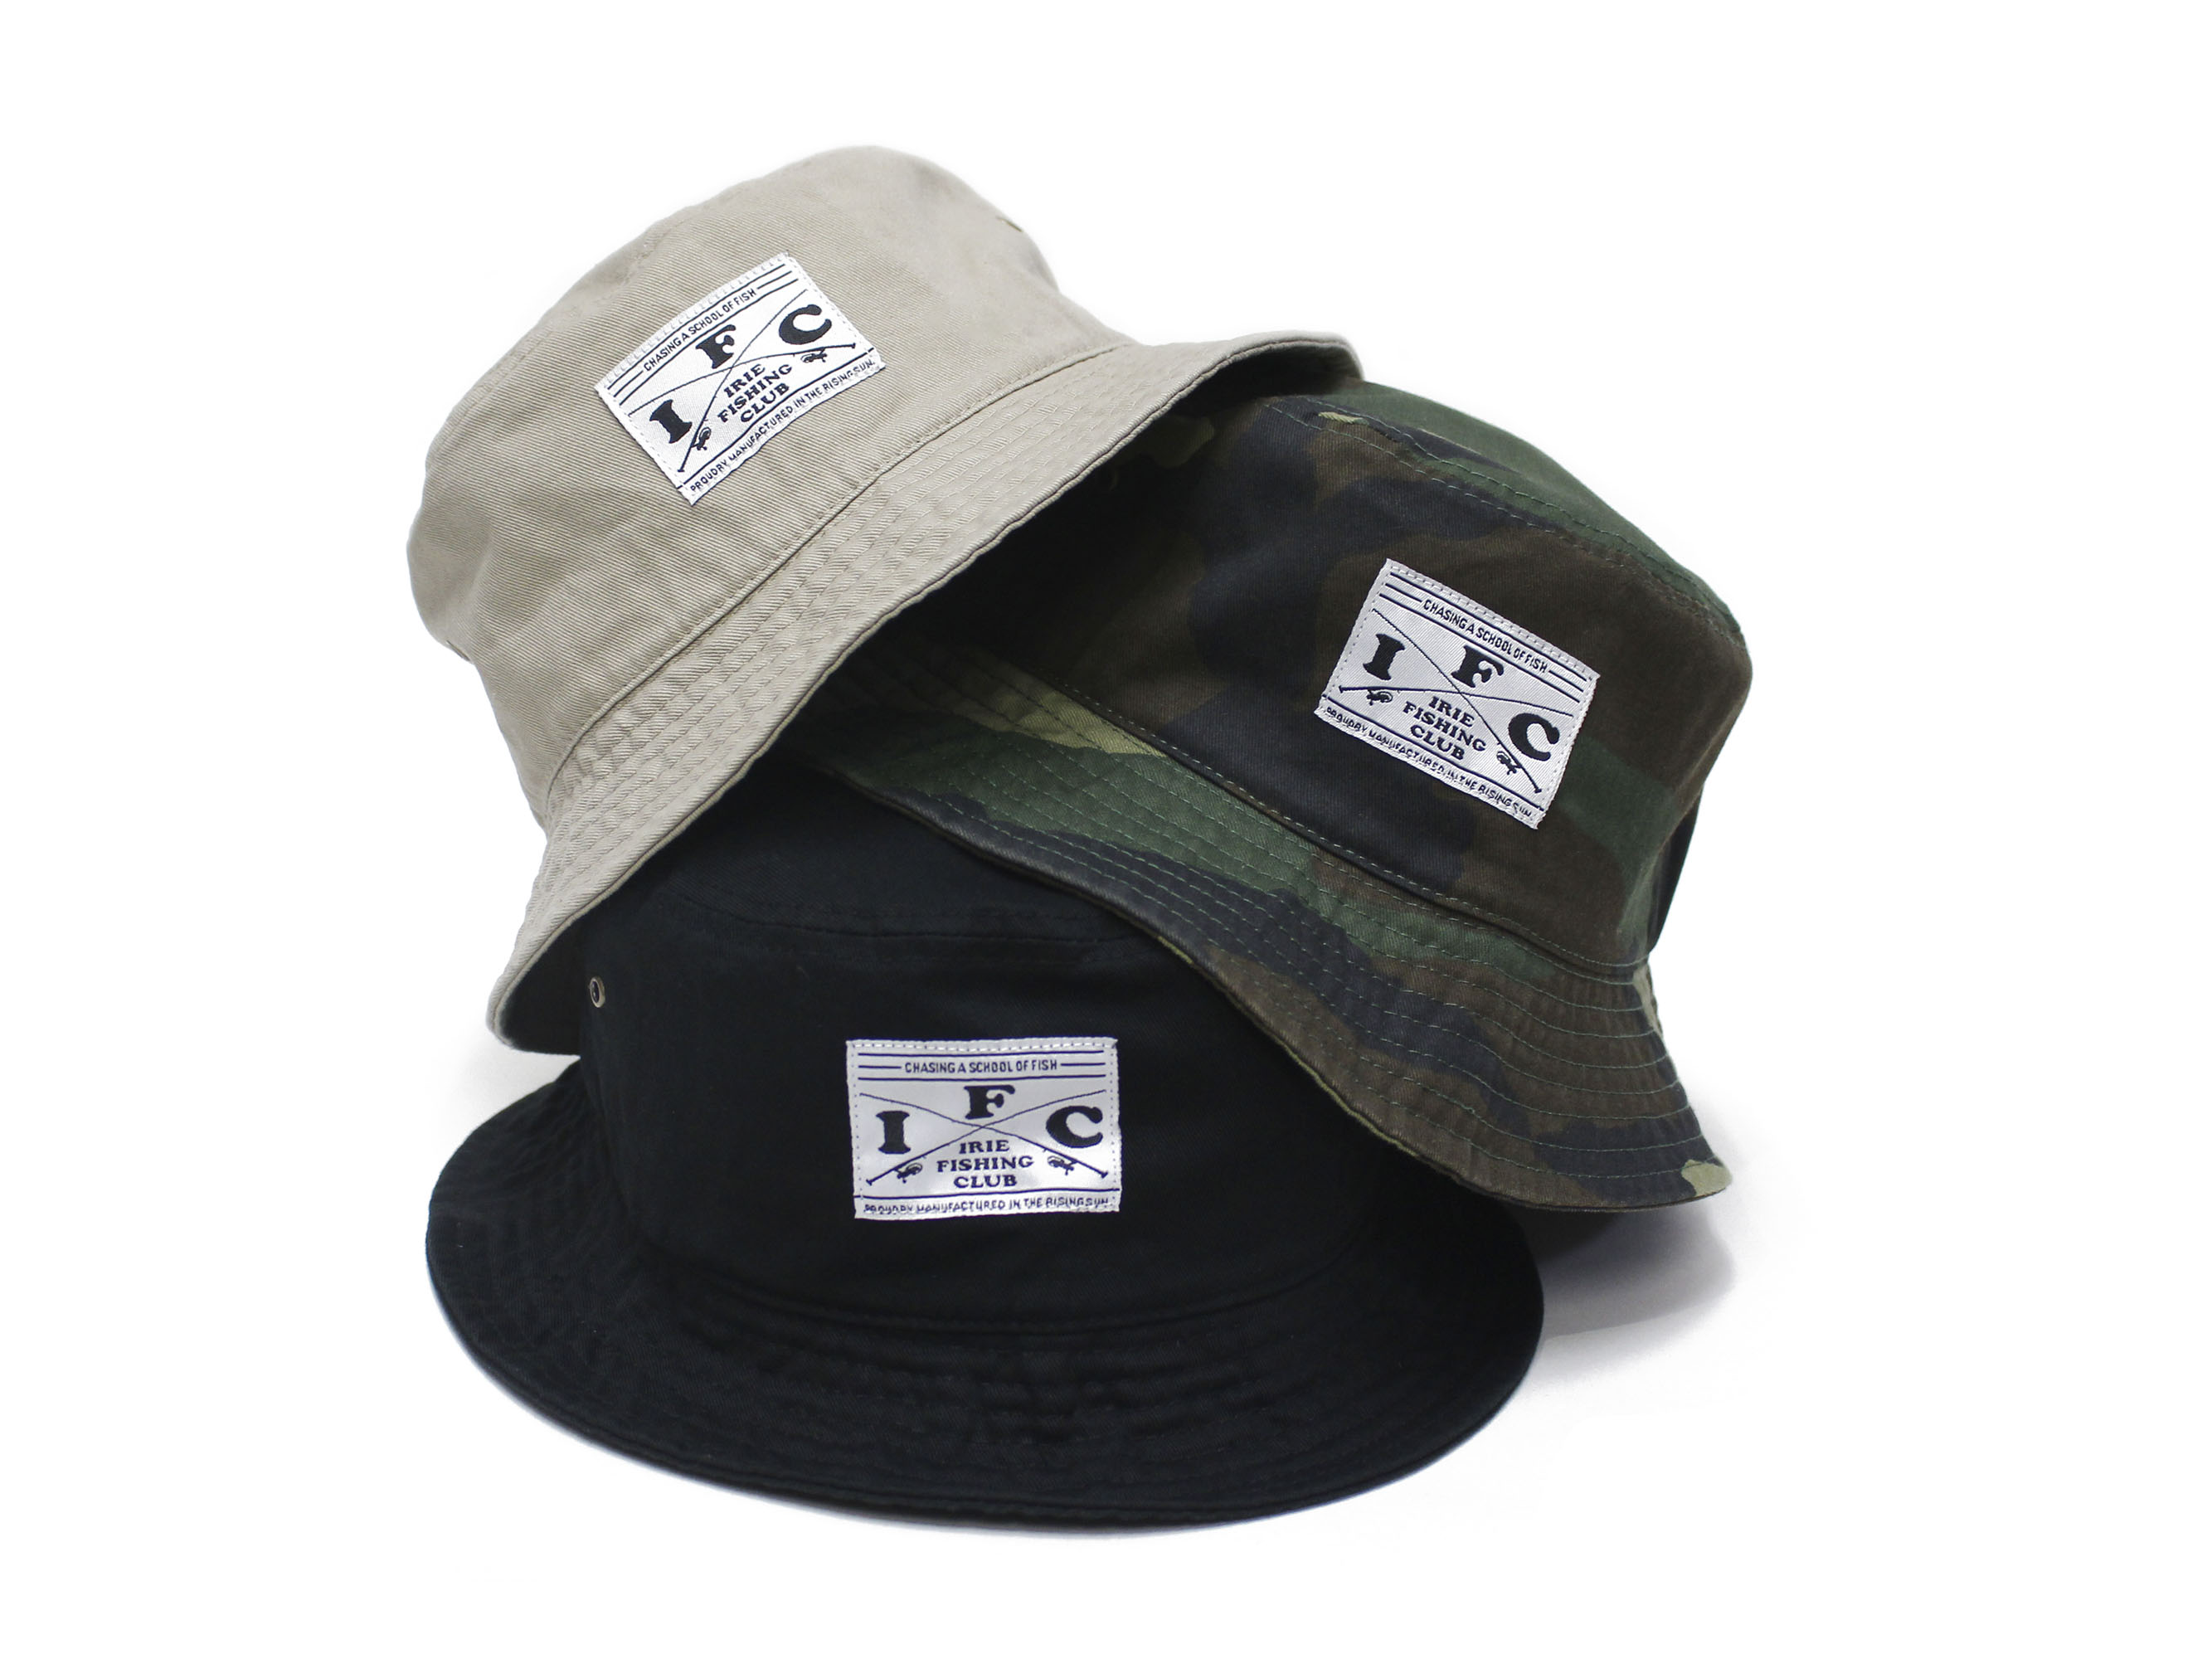 IFC BUCKET HAT - IRIE FISHING CLUB